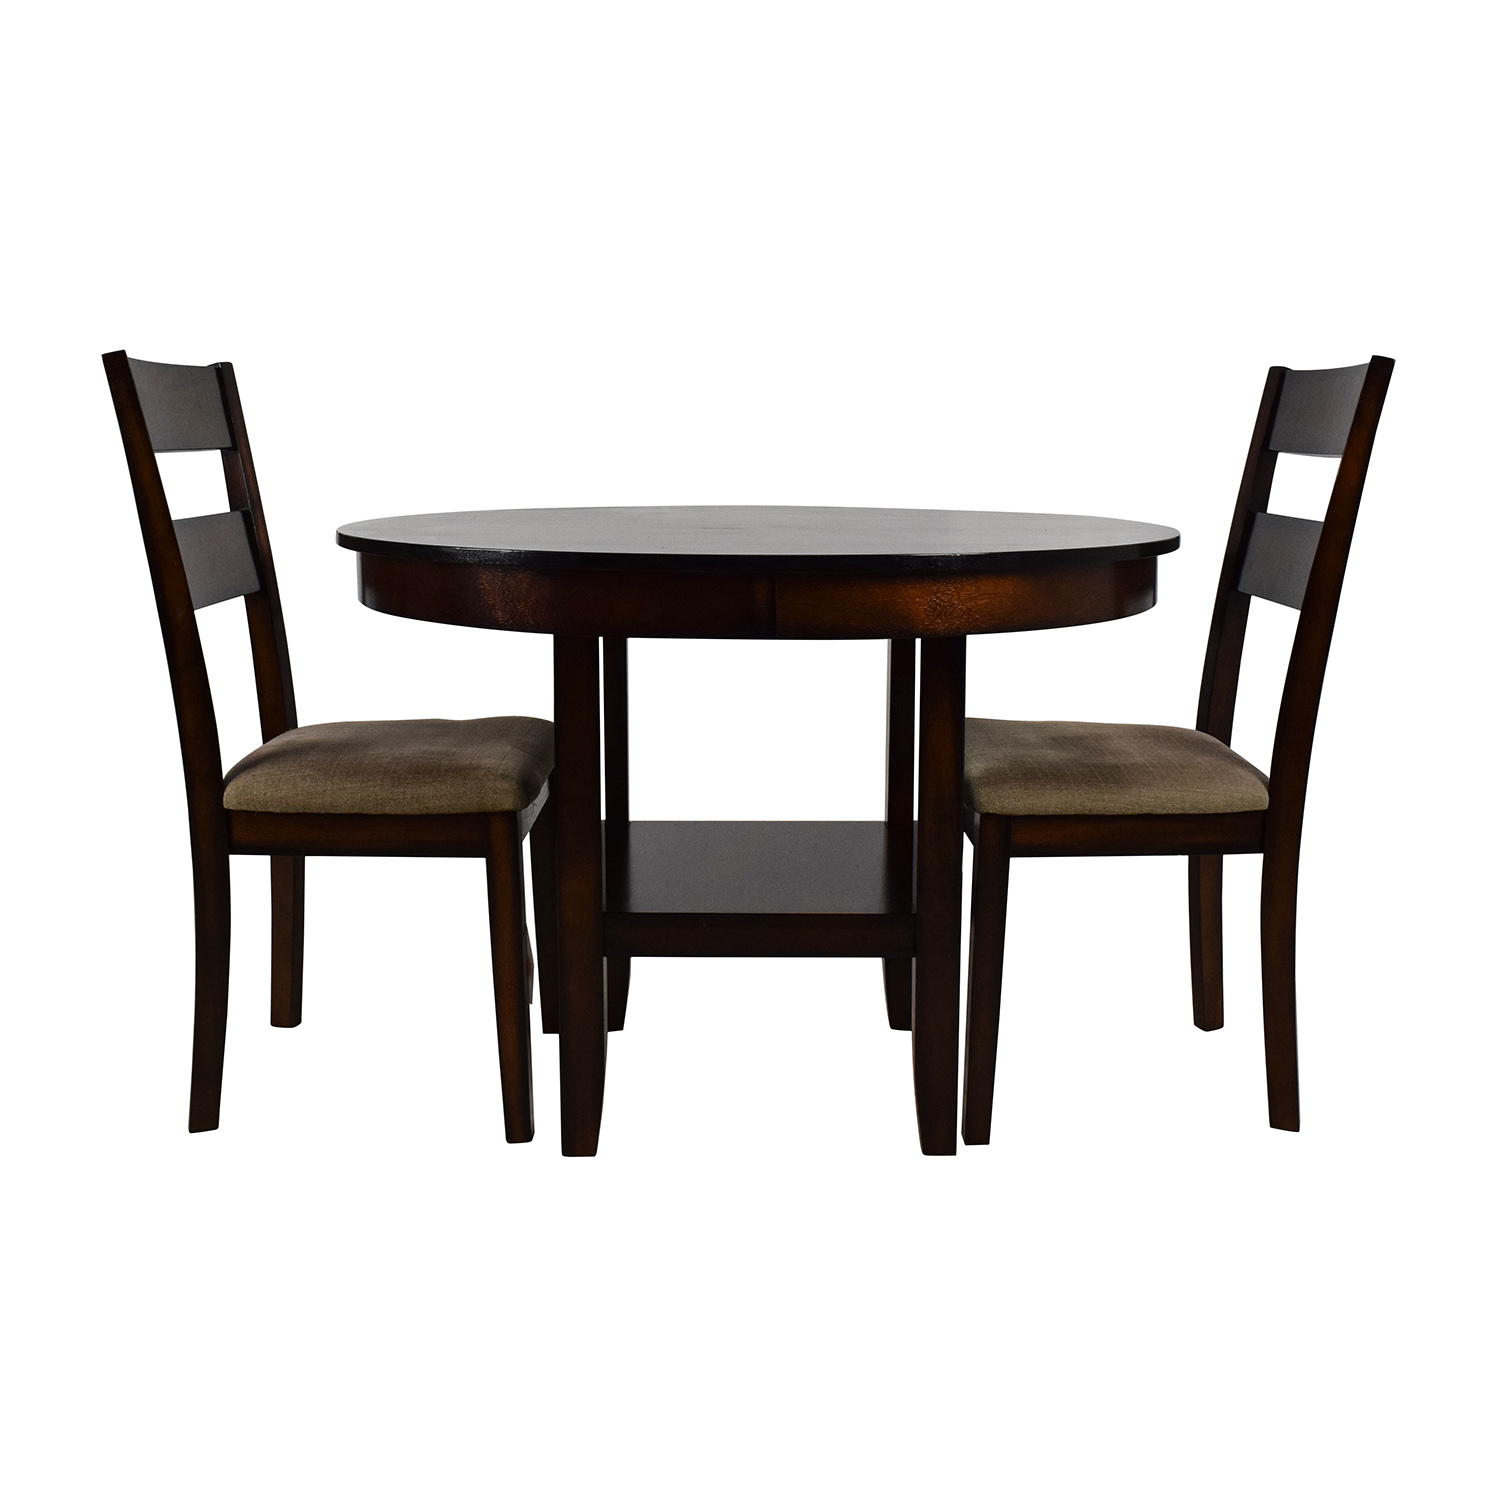 Macyu0027s Macyu0027s Branton 3 Piece Dining Room Collection ...